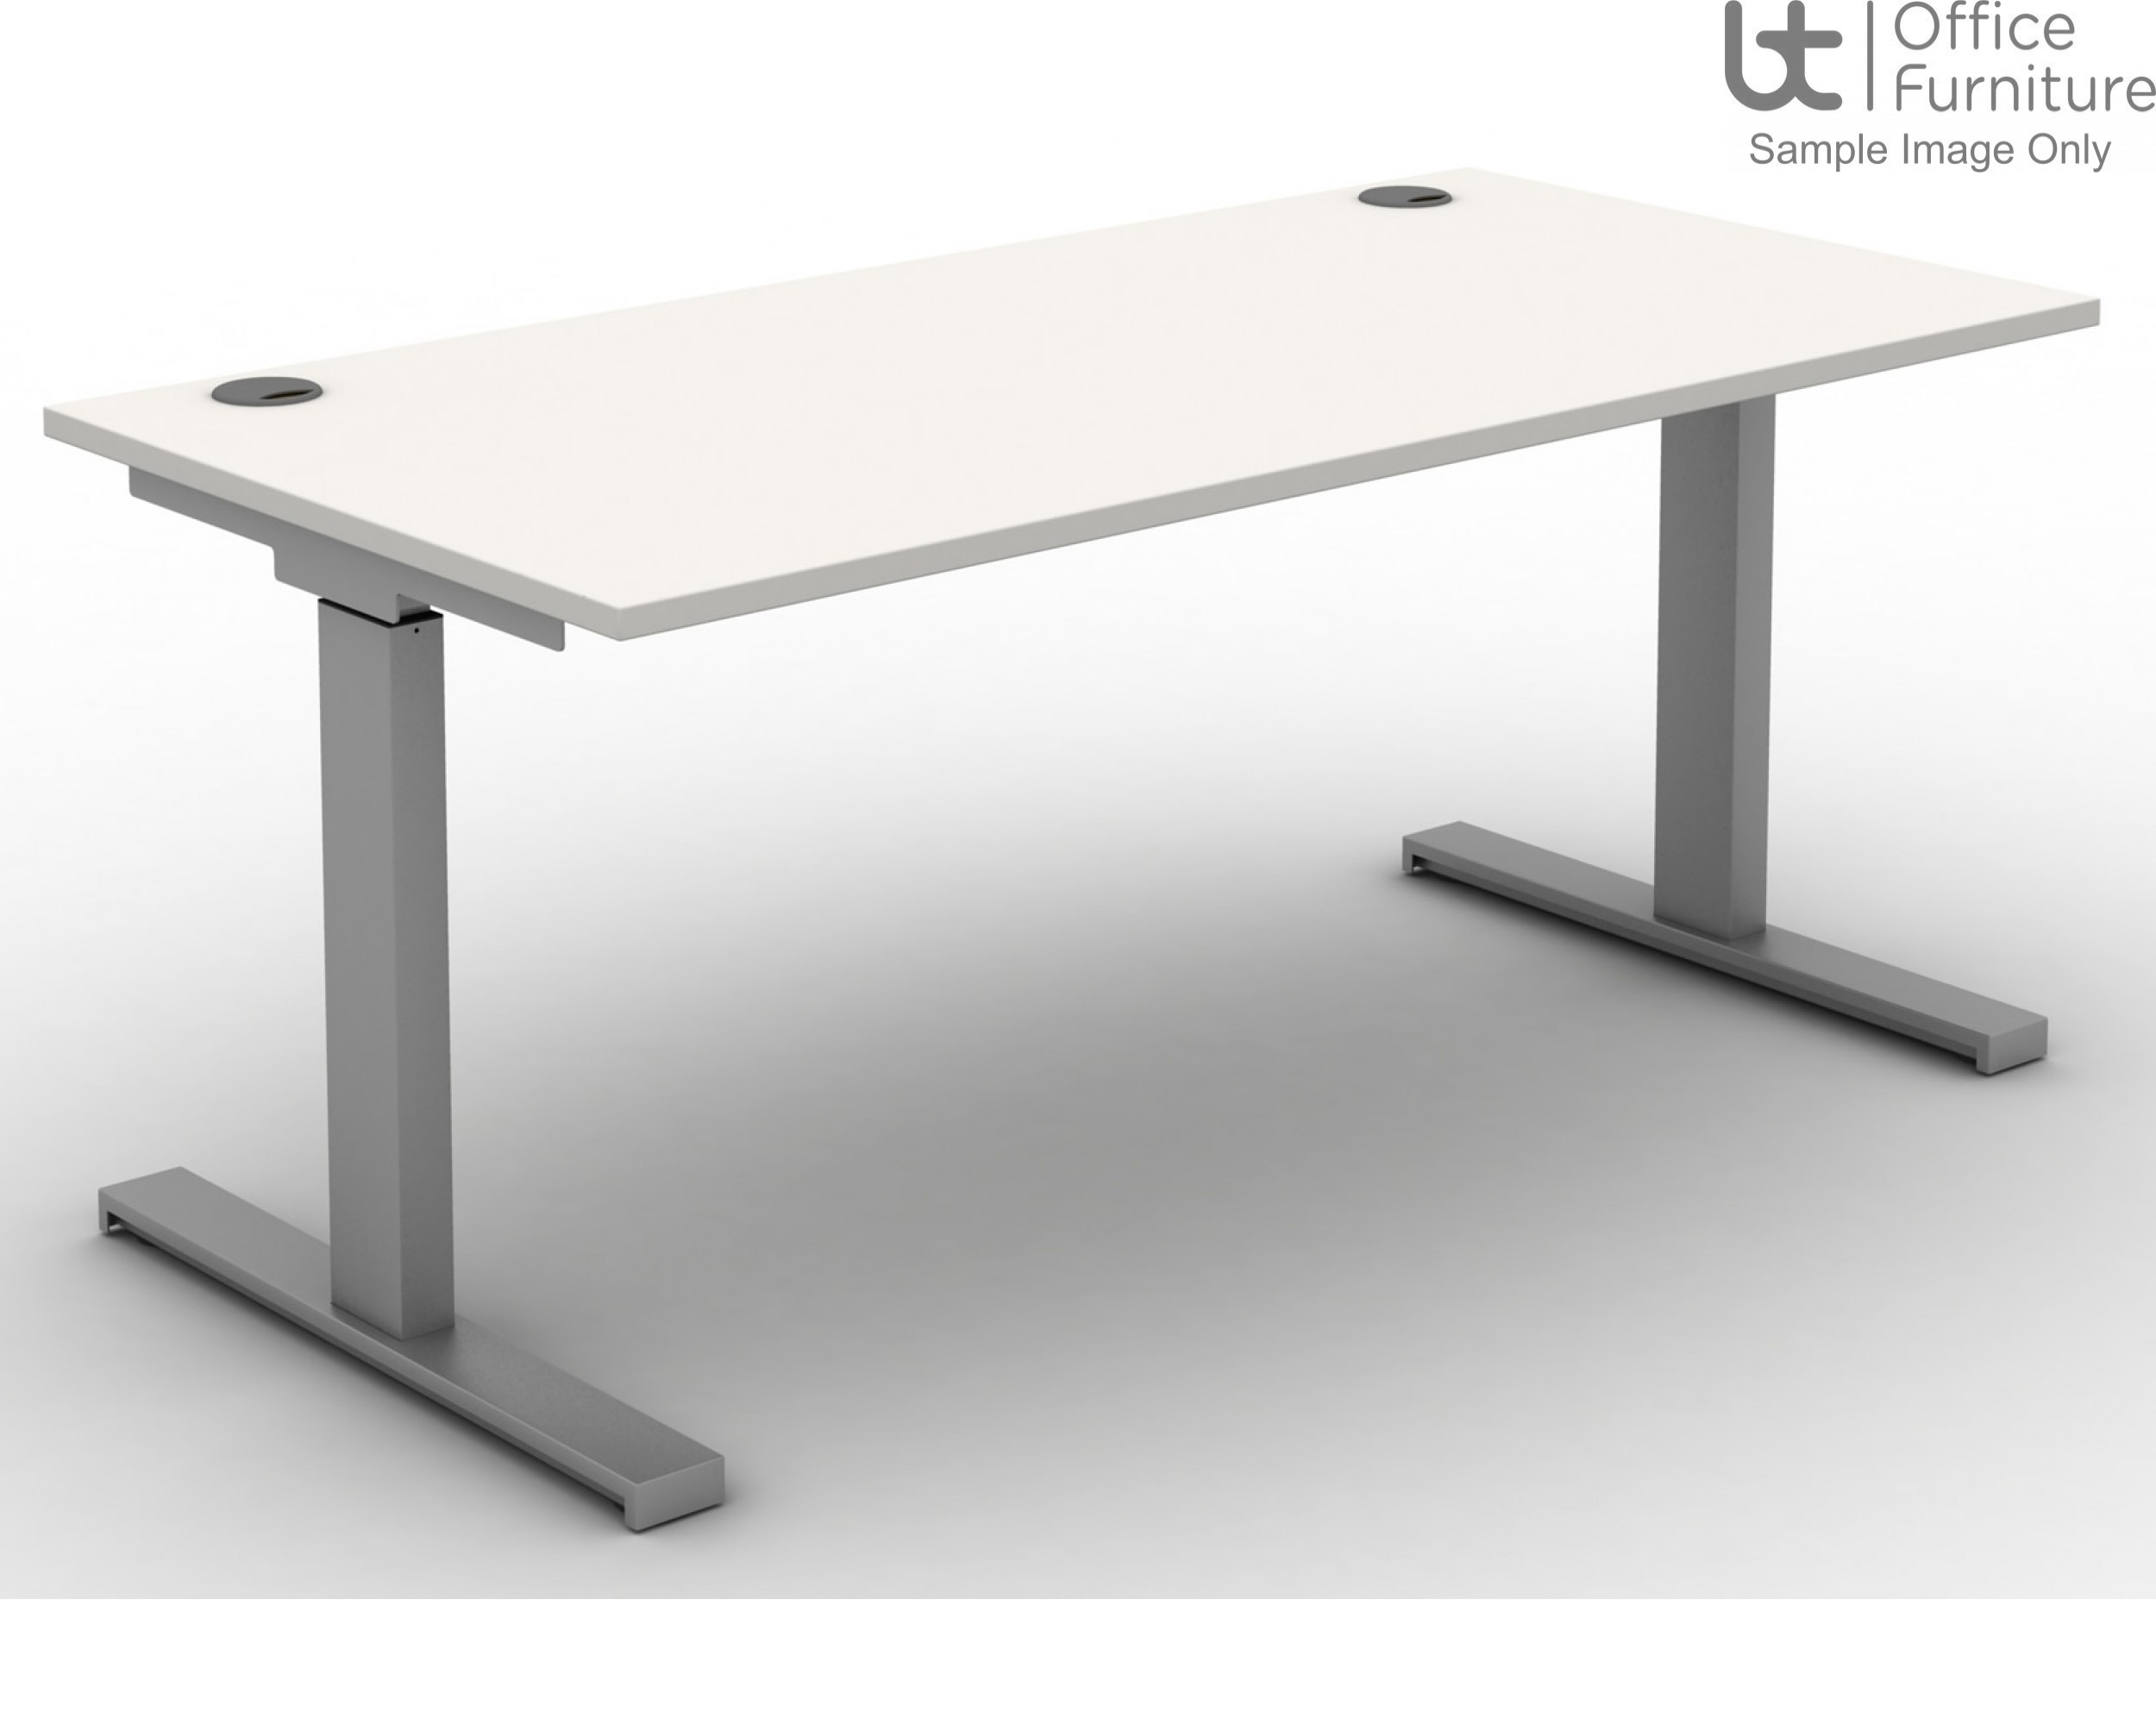 Move Set and Forget Rectangular Height Adjustable Sit-Stand Desk - Tops Cable Ports & Square Corners